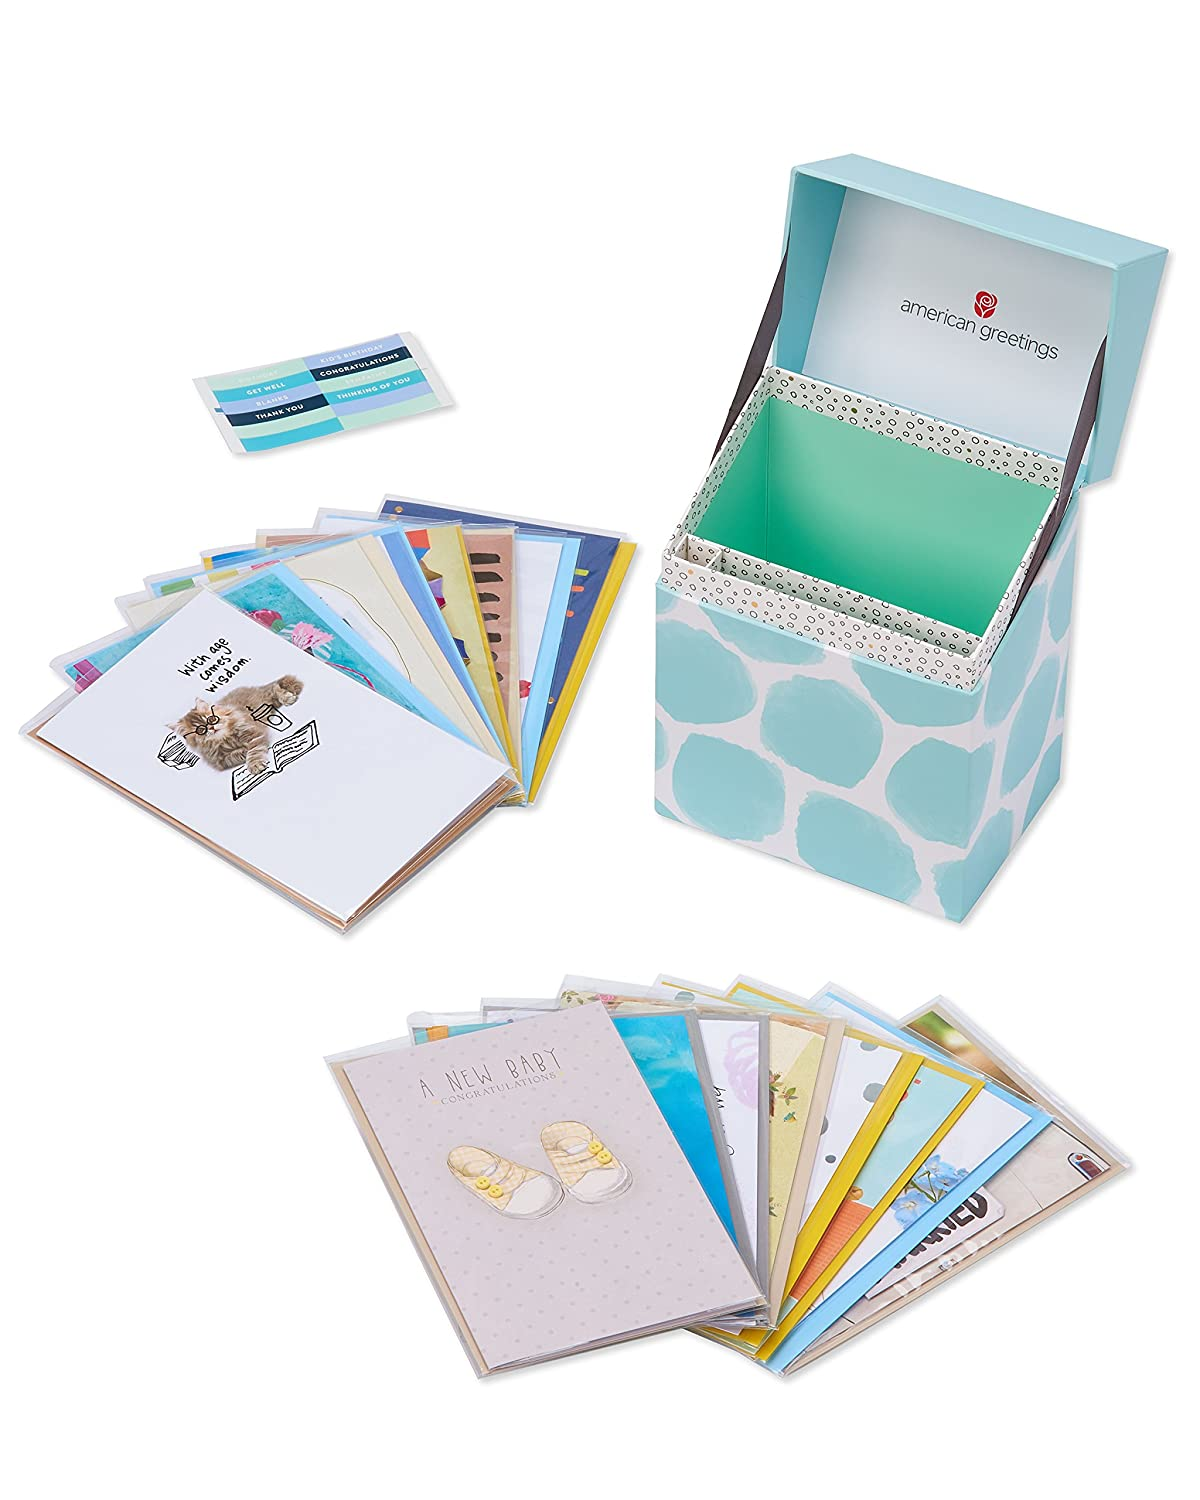 Amazon american greetings starter kit greeting card amazon american greetings starter kit greeting card collection with organizer 16 count office products kristyandbryce Choice Image